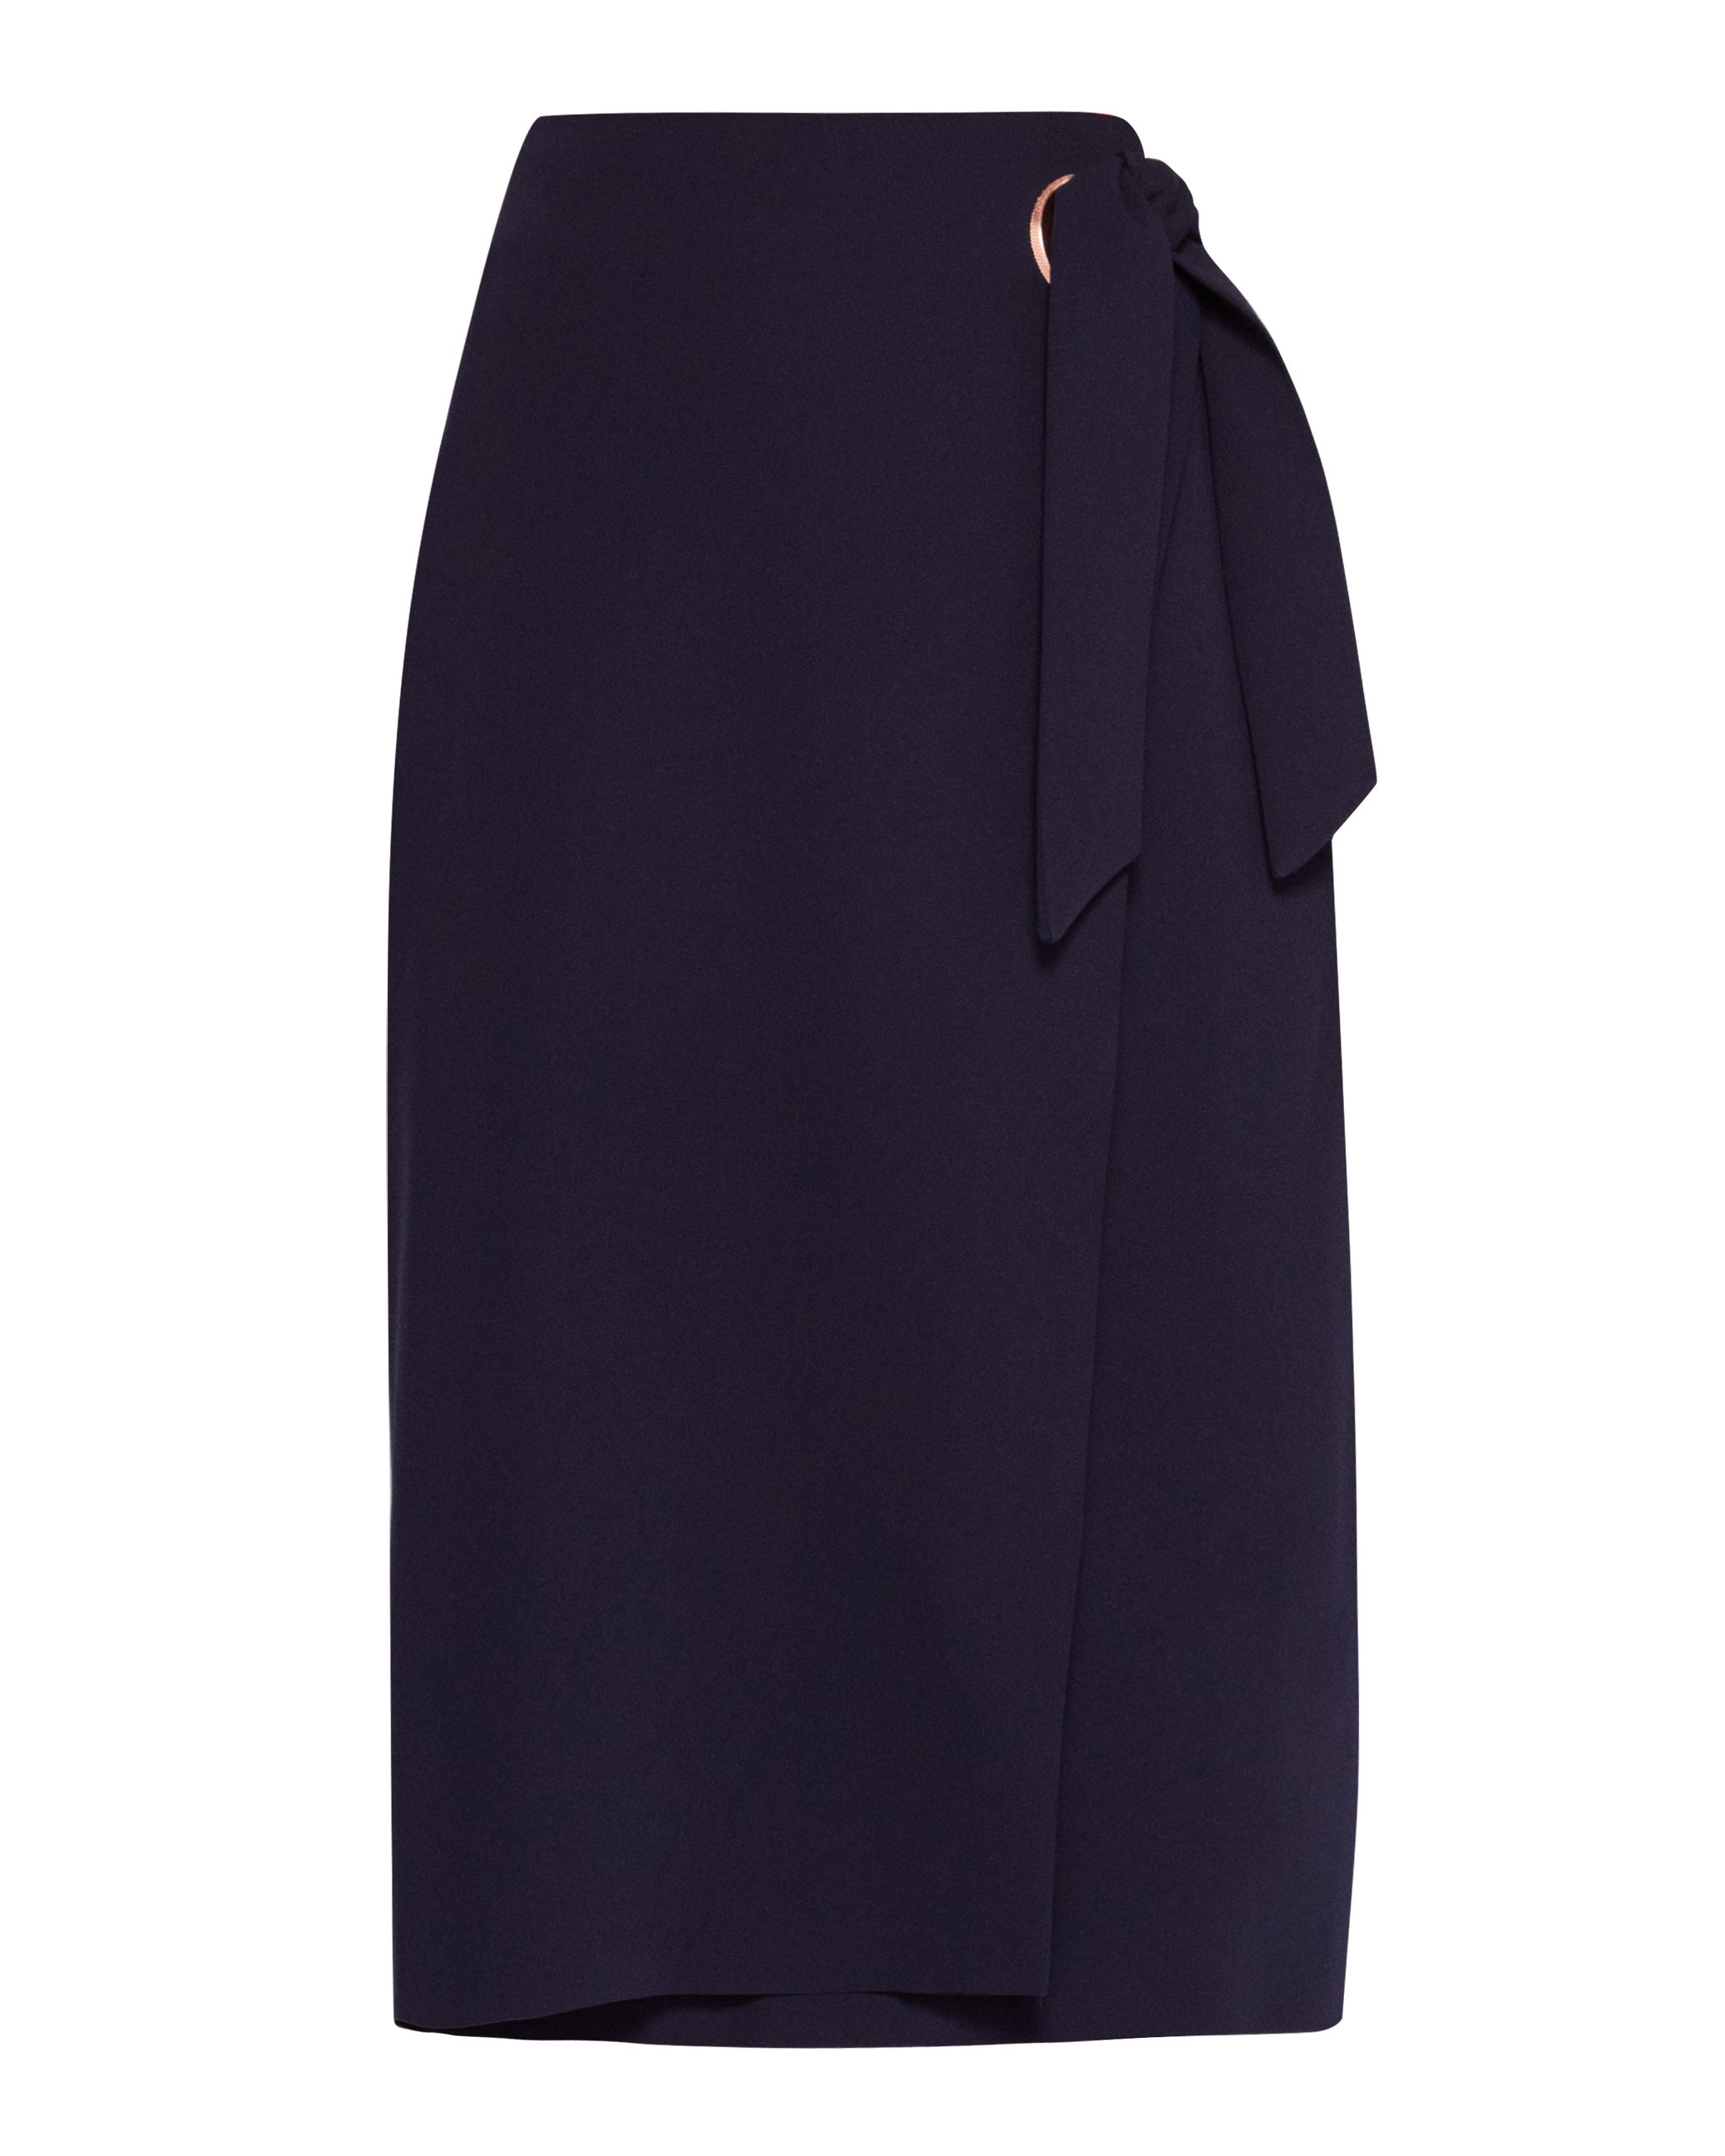 Ted Baker Teea Eyelet Detail Wrap Skirt, Blue